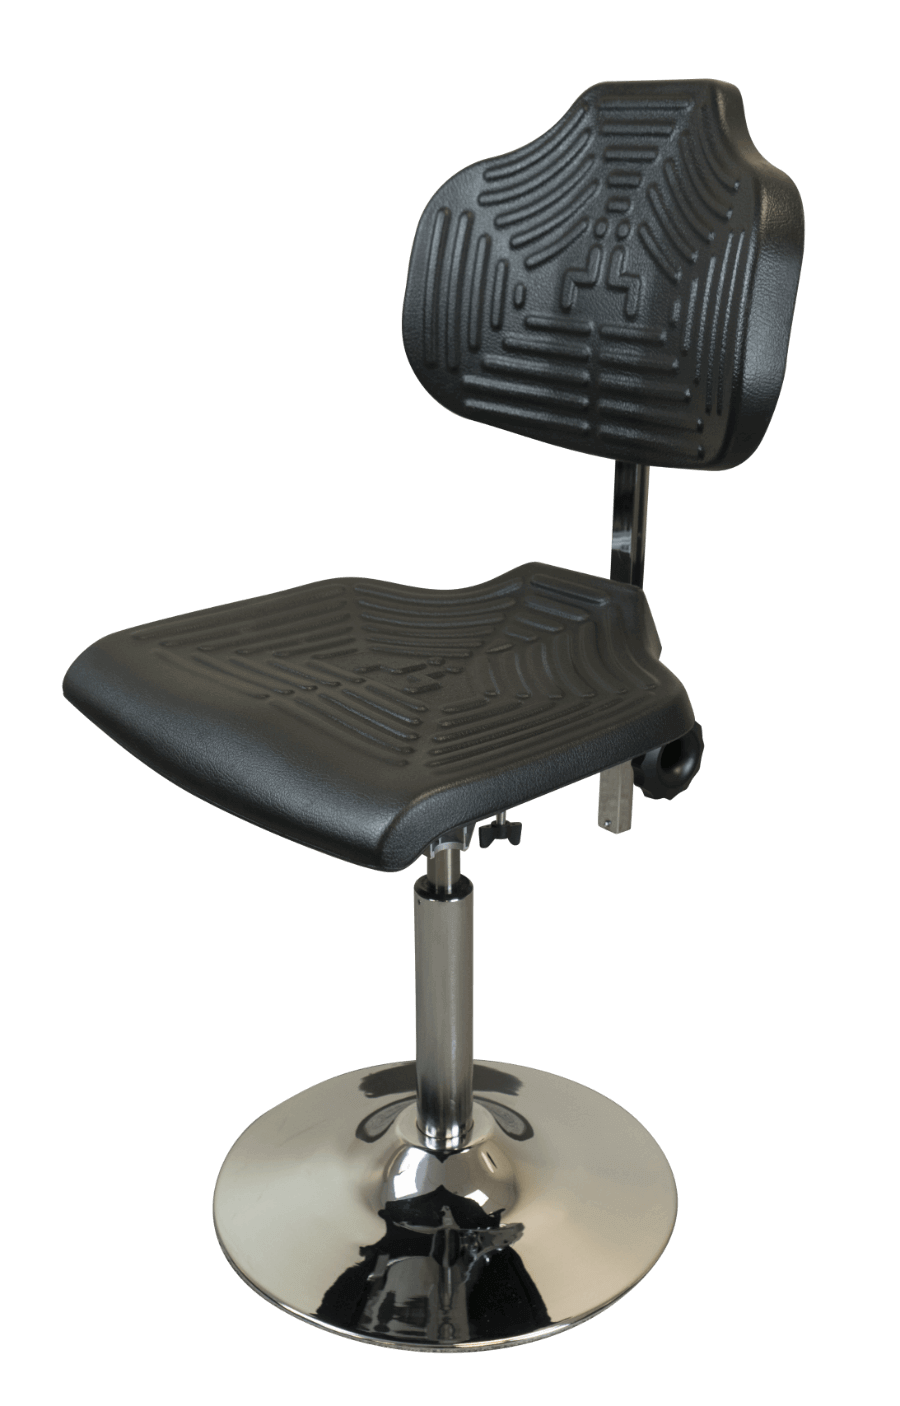 iMovR Tempo Treadtop Office Chair